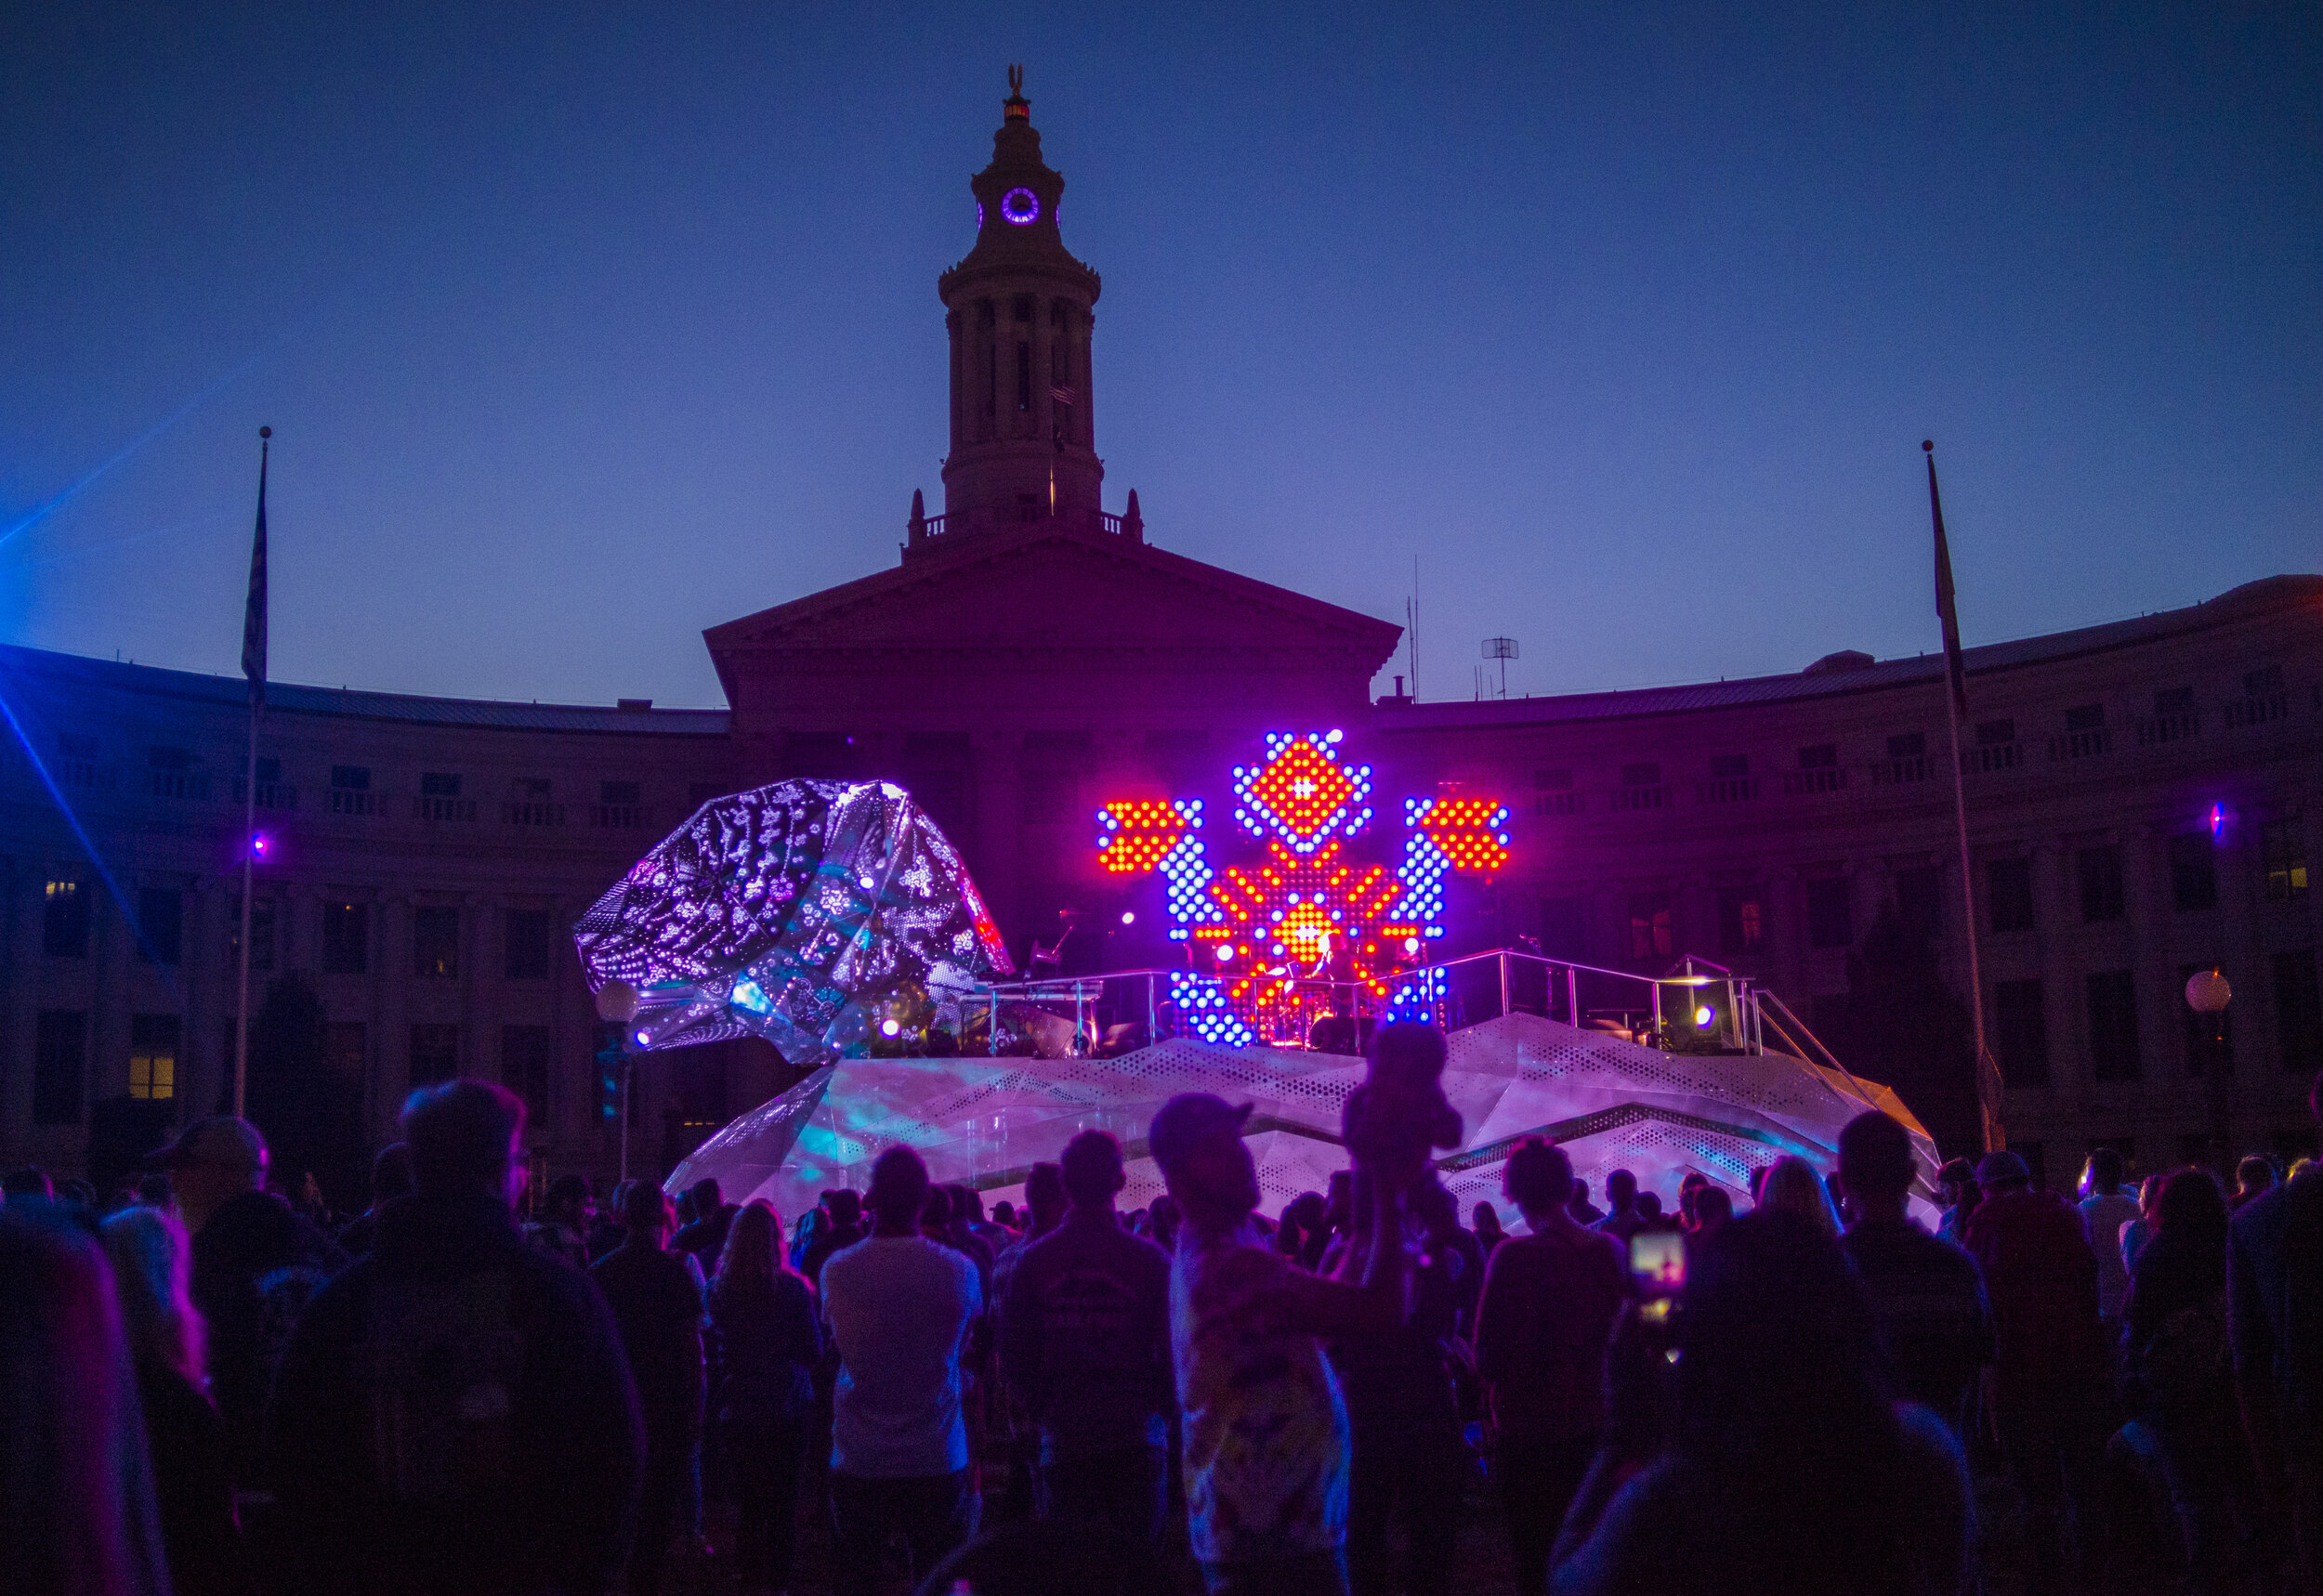 "2019 FestivalEmpathy in Action - At the 2019 Festival convened renowned experts and leaders from throughout the Americas for four days of events, workshops and performances designed to inspire critical thinking, accelerate and transform our business and social connections and promote action. The 2019 festival theme was ""Empathy in Action"" and showcased the people and ideas across North and South America that are moving beyond divisions to build solutions to the most important issues we face together."